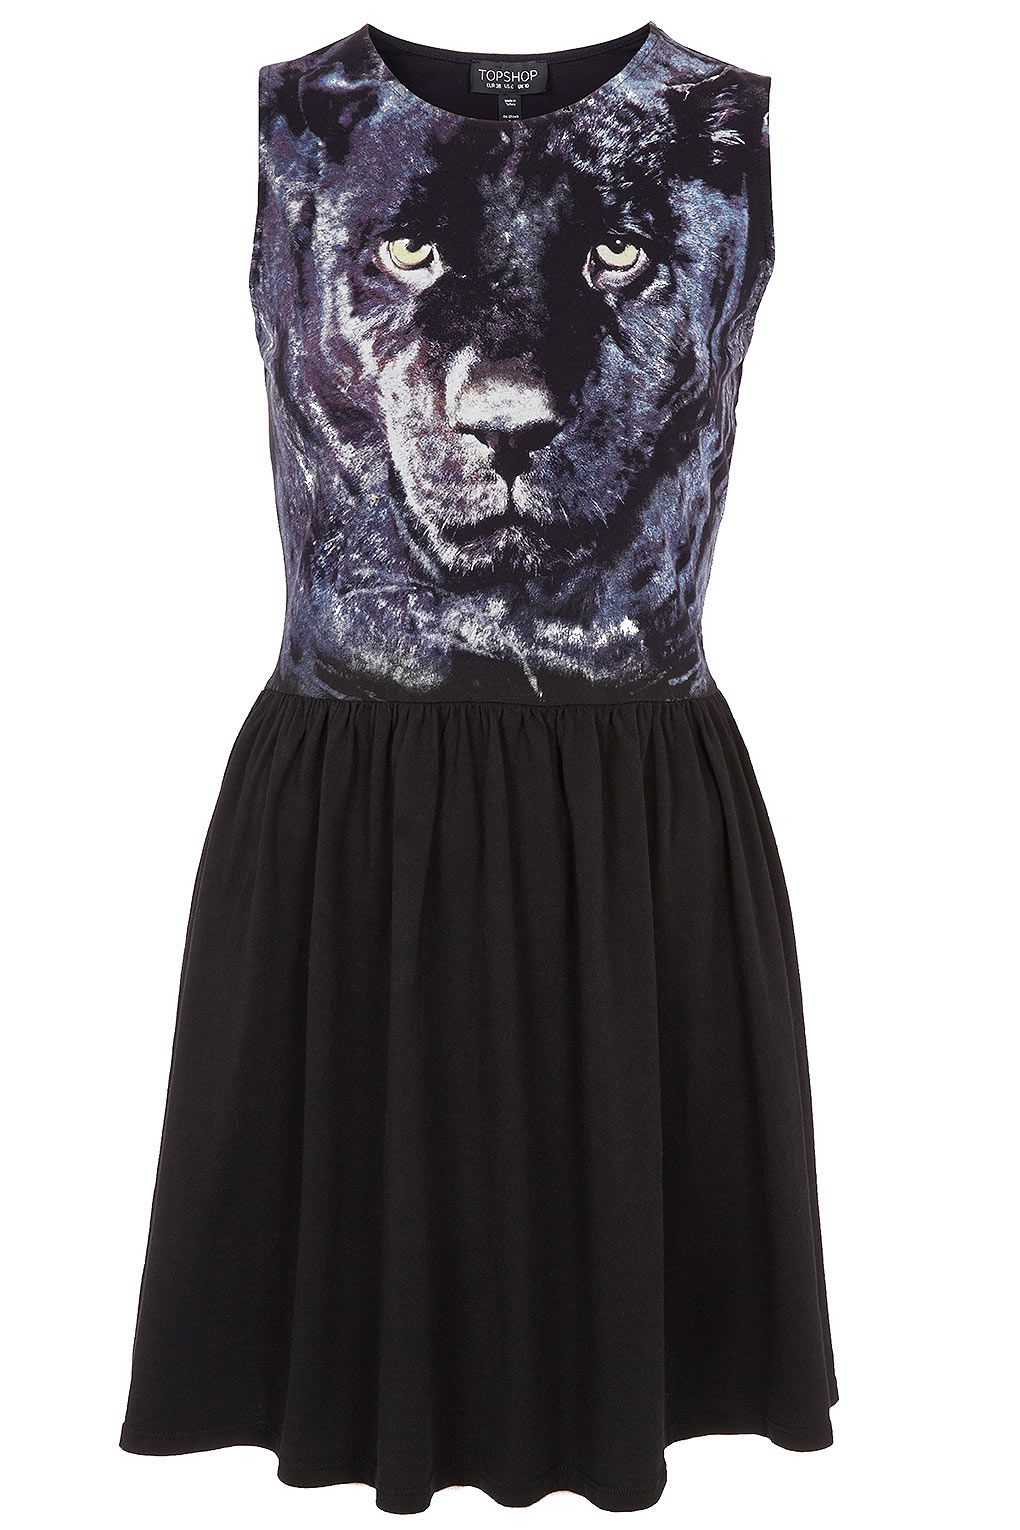 PANTHER FACE SKATER DRESS Price: £28.00 // Now this is- as Tyra Banks would say, fierce!